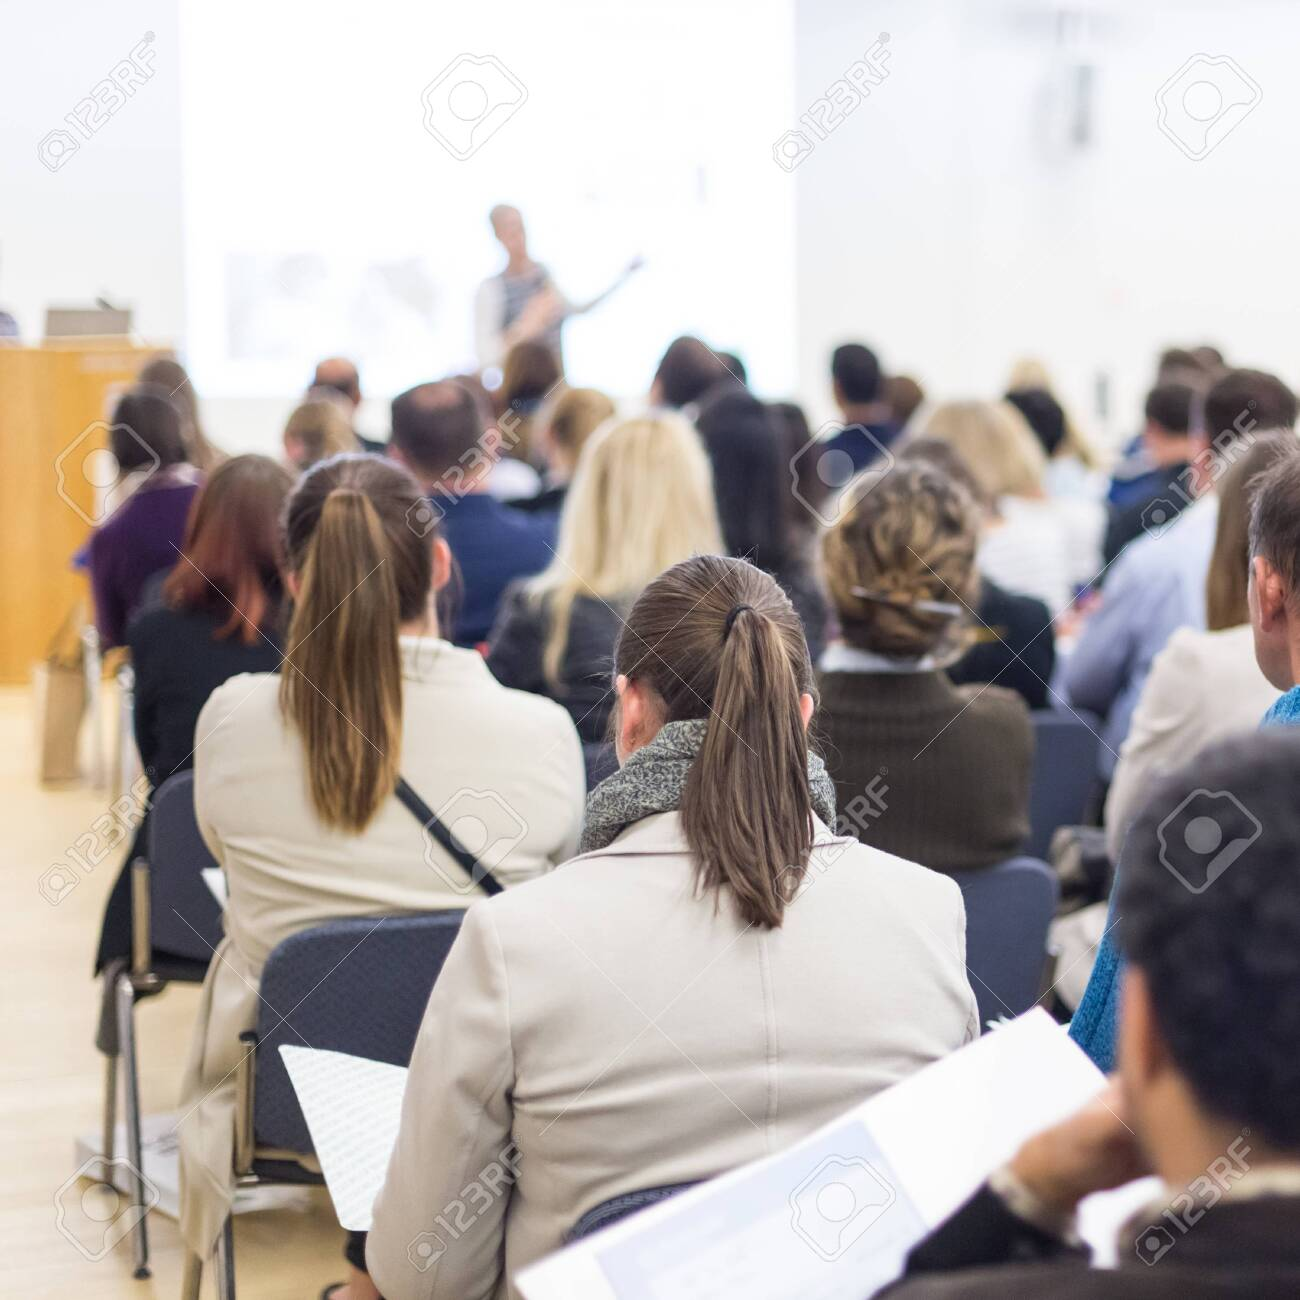 Business and entrepreneurship symposium. Female speaker giving a talk at business meeting. Audience in conference hall. Rear view of unrecognized participant in audience. Copy space on whitescreen. - 123558614